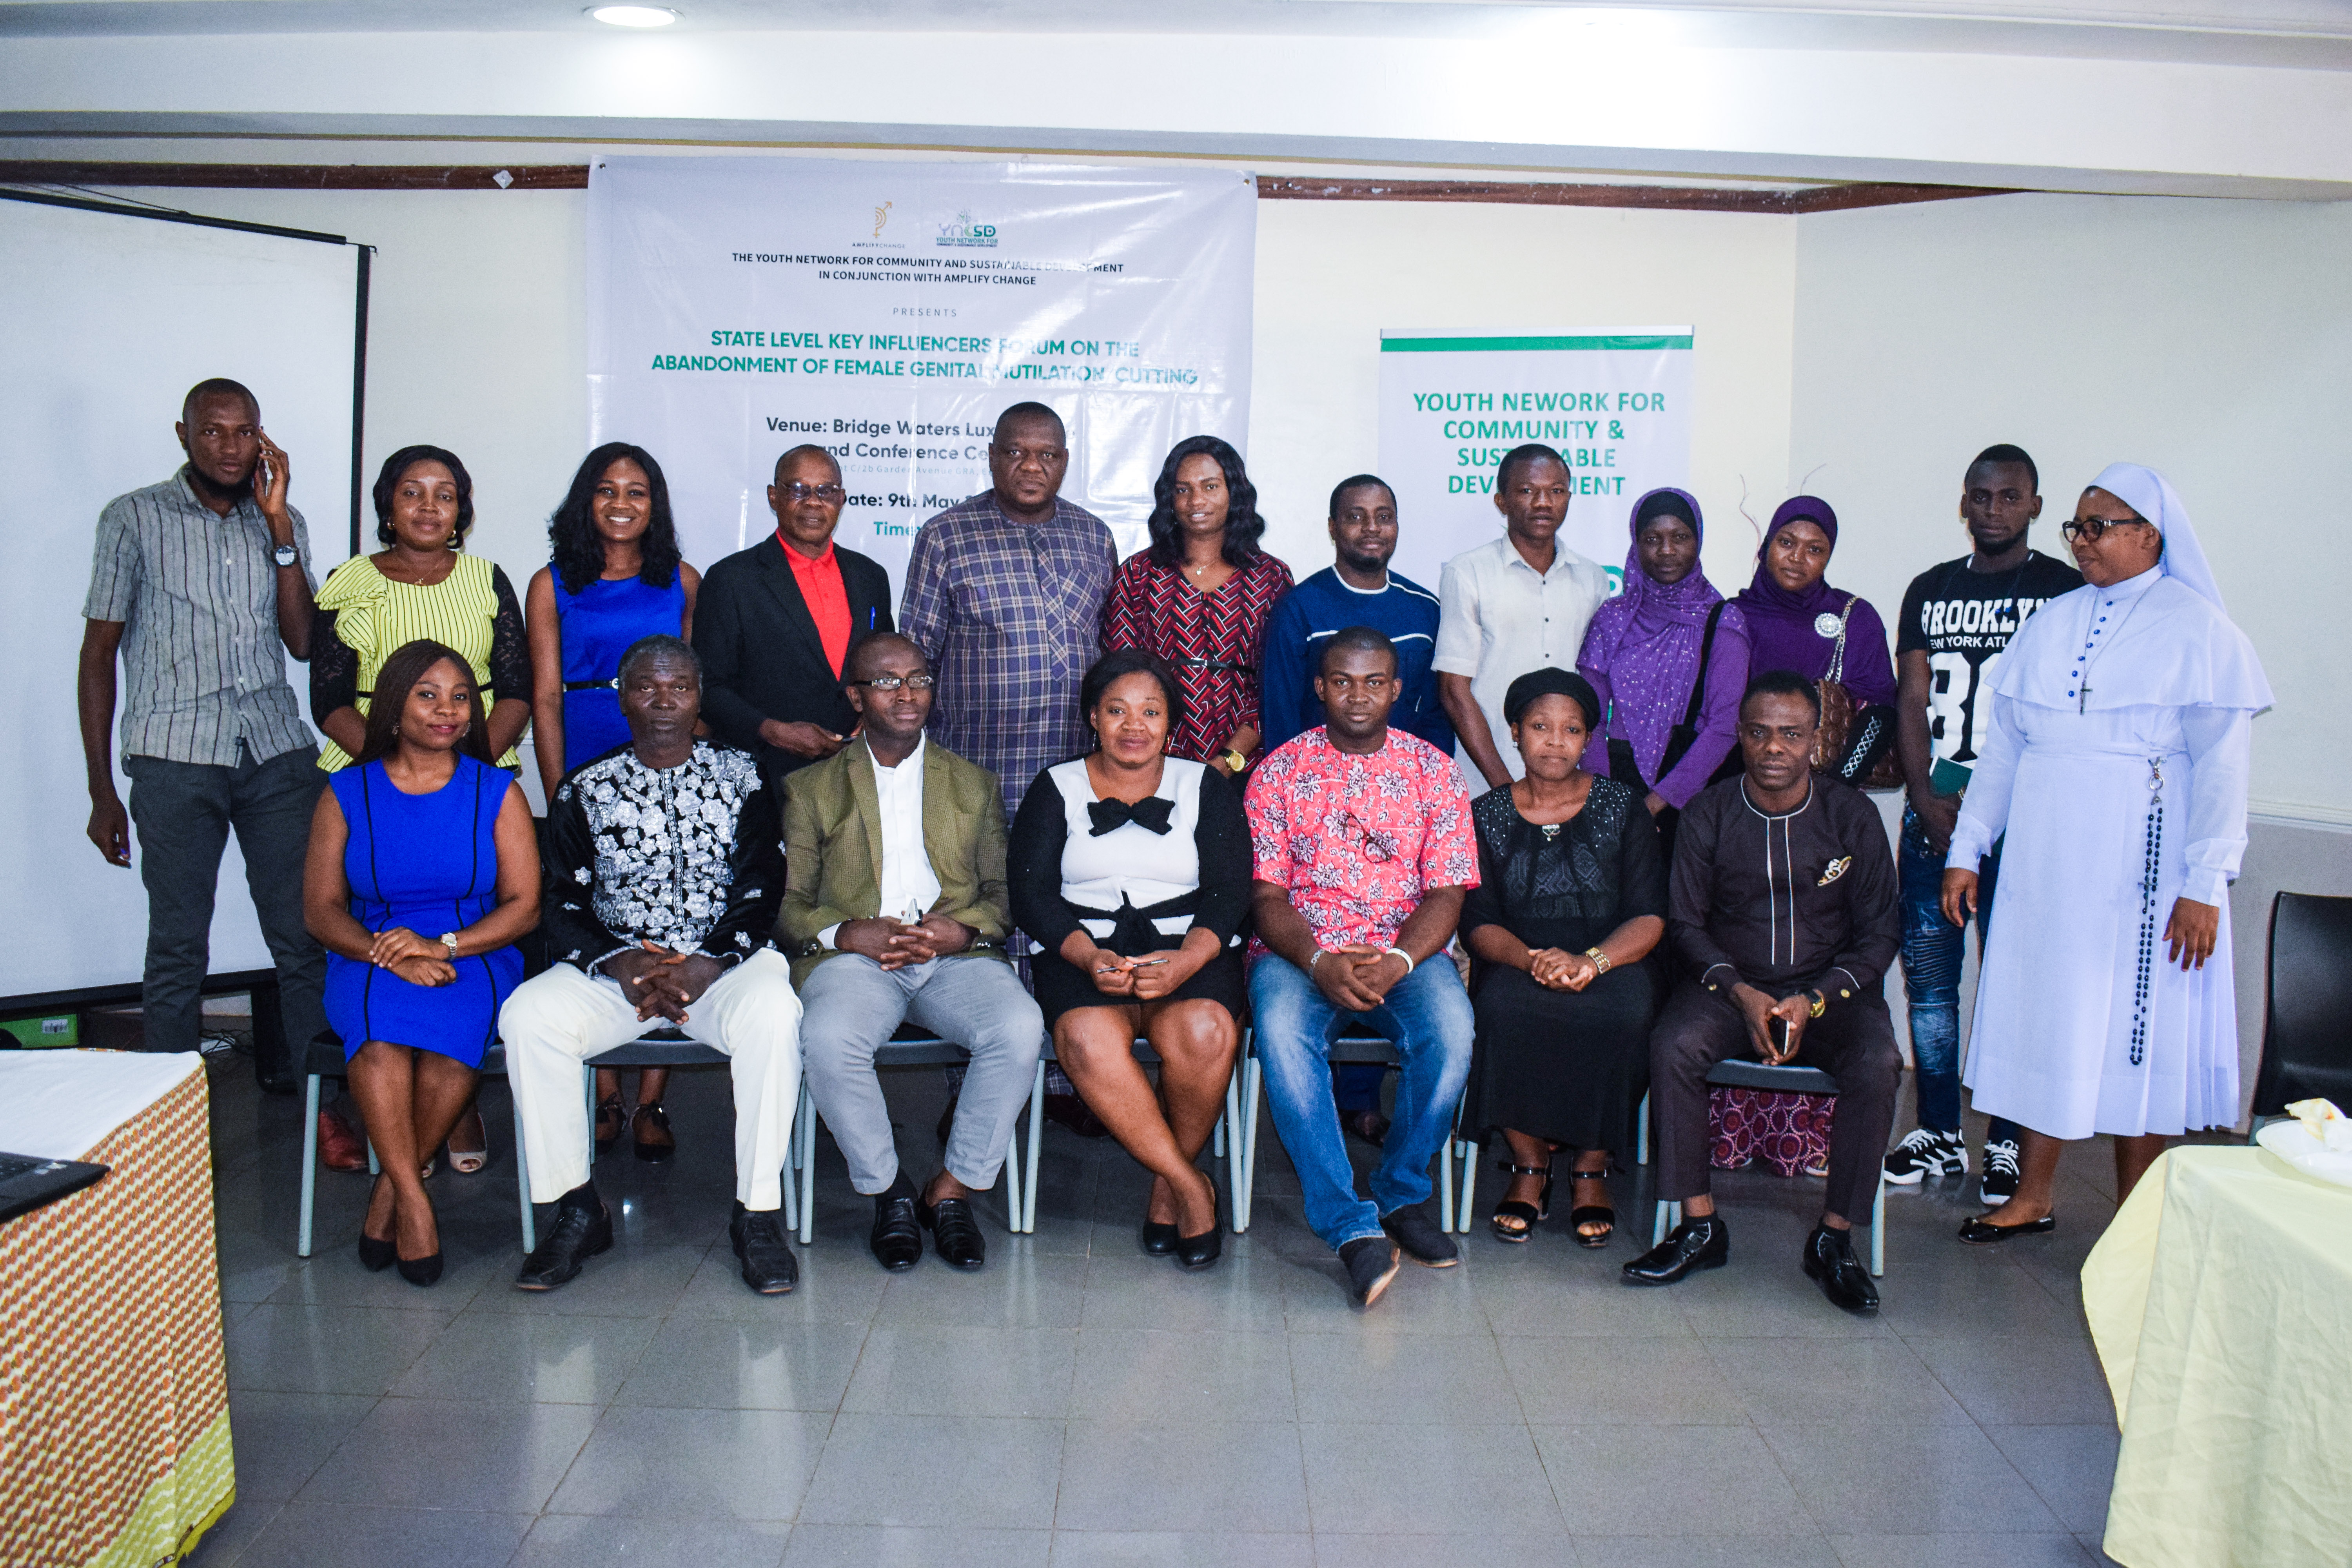 National Key Influencers Dialogue & Consensus Building For Stronger Sexual And Reproductive Health And Rights Movements In Nigeria